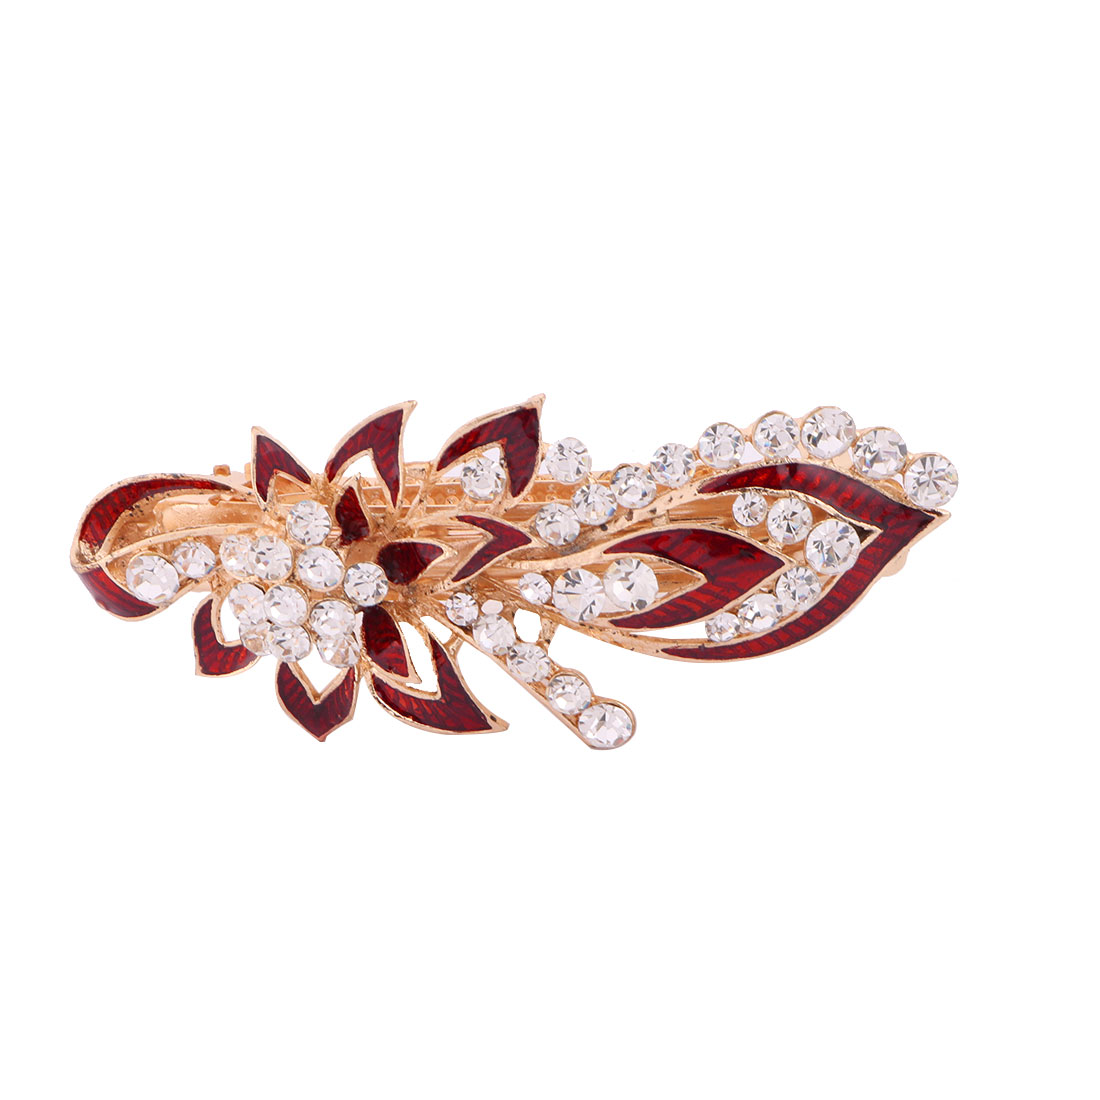 Ladies Metal Flower Design Faux Rhinestones Inlaid Hair Clip Clasp Hairpin Red